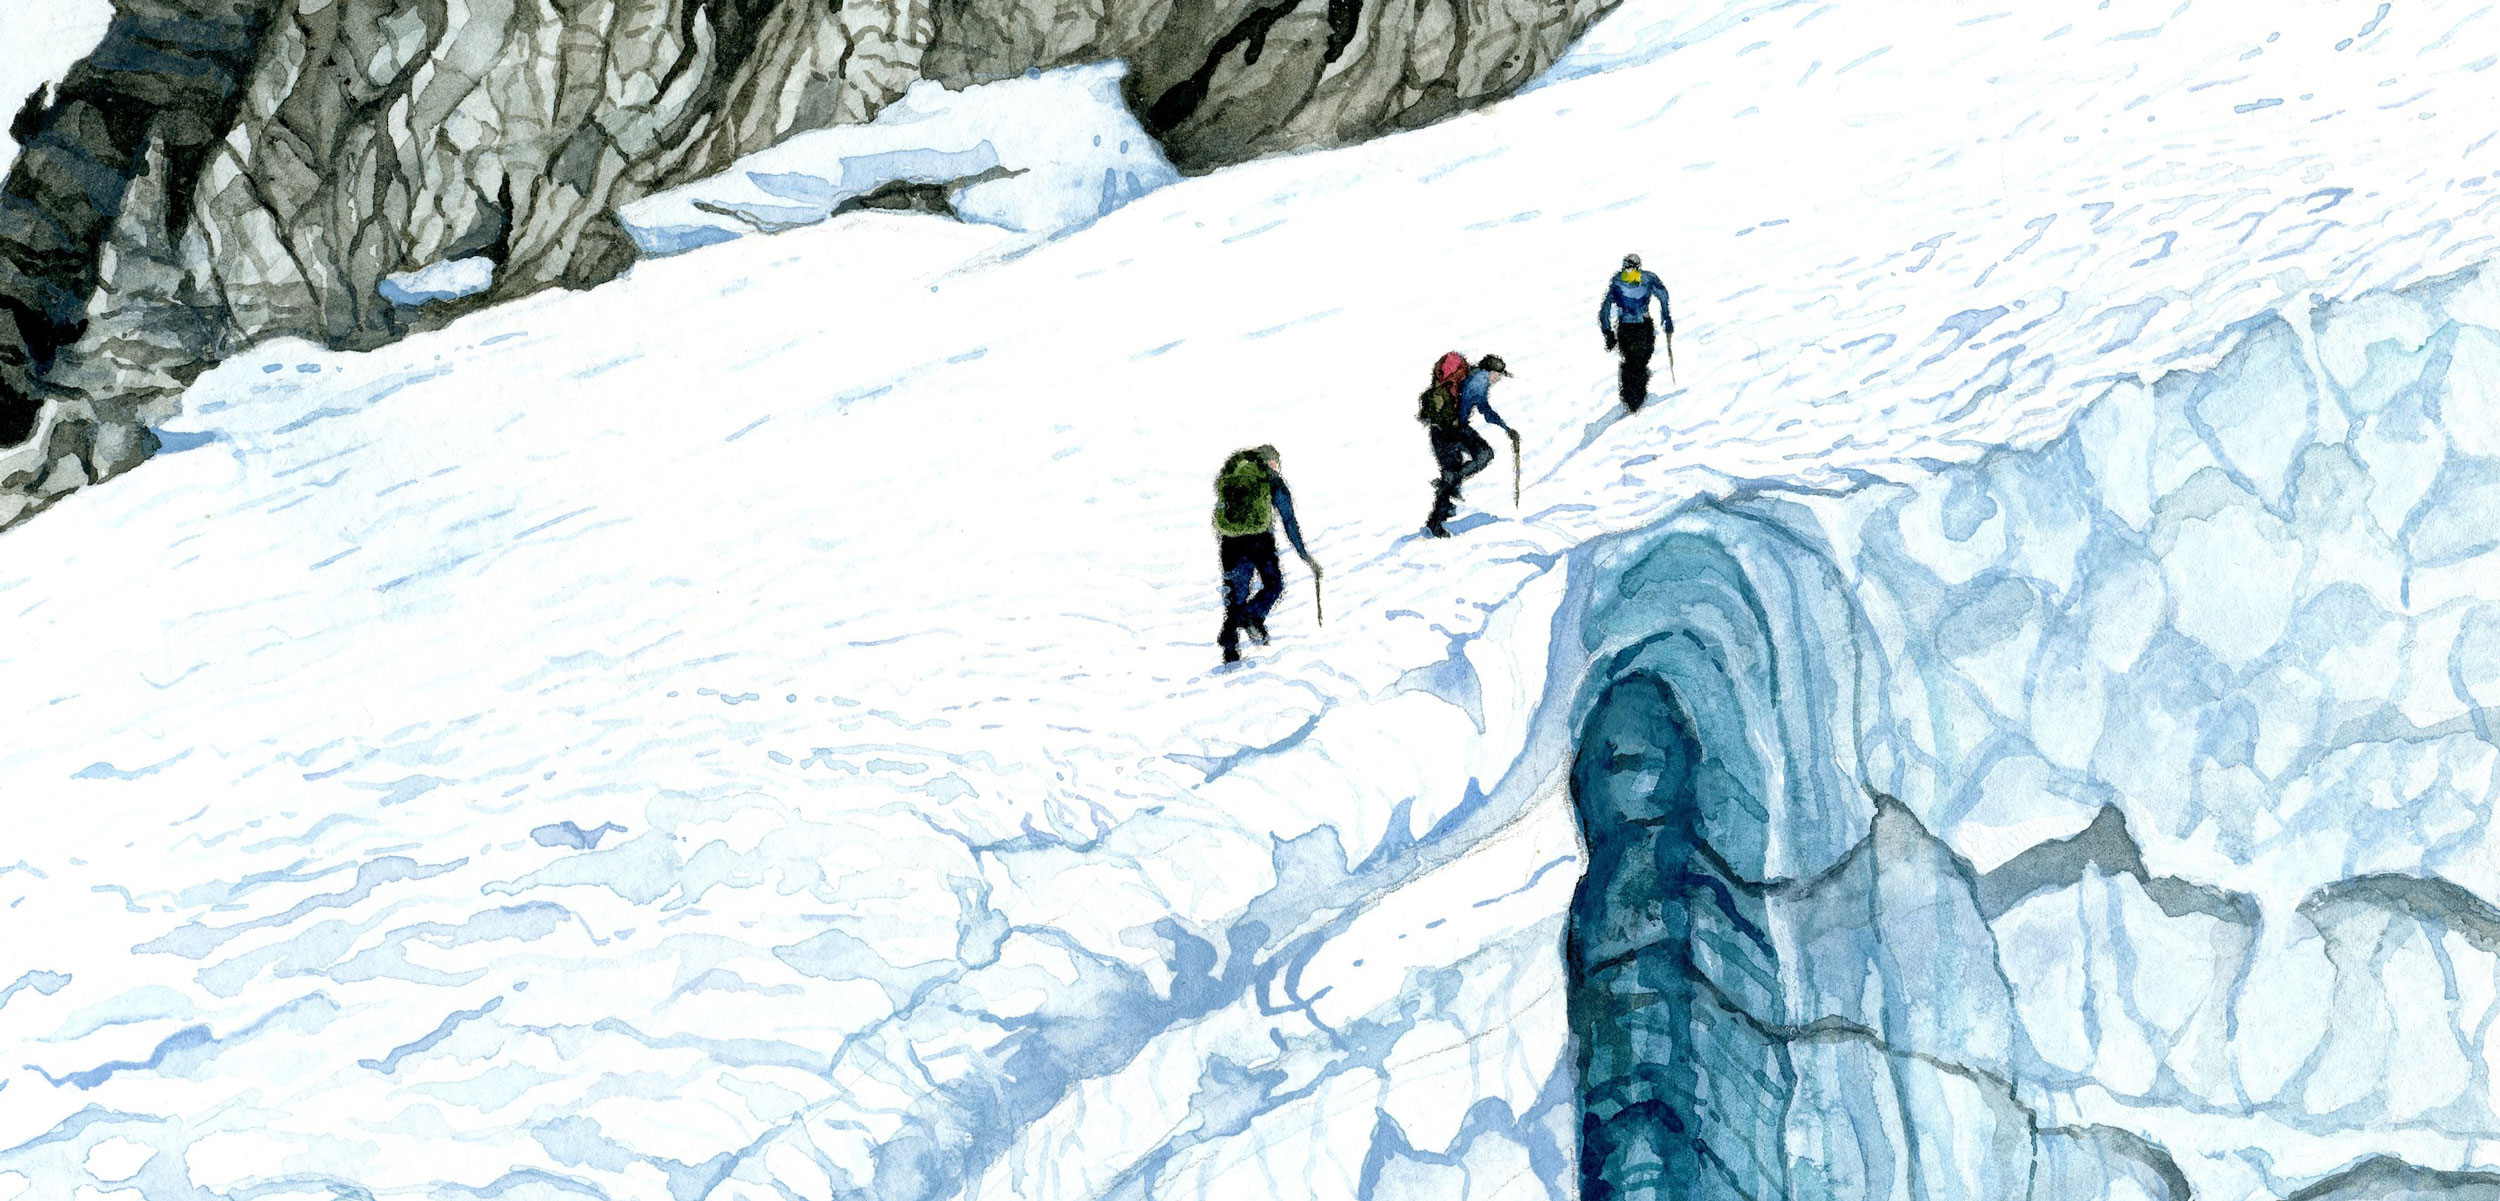 watercolor painting by Jill Pelto of researchers on a glacier